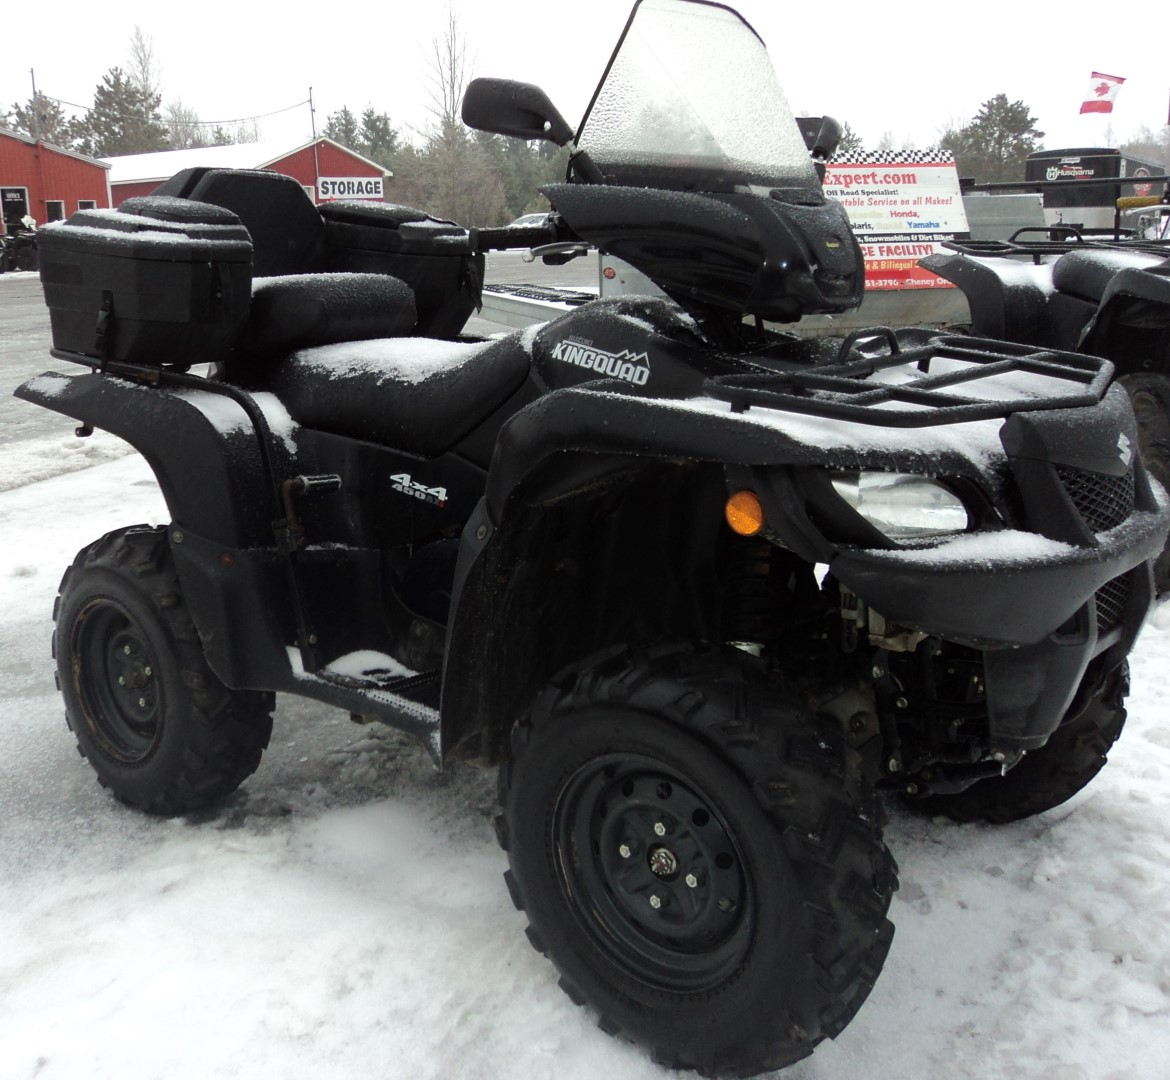 Suzuki King Quad300 Repair Manual Quad 450 Fuel Filter As A Member You Can Post In Our Forums Upload Your Photos And Videos Use Contribute Downloads Create Own Page Add Atv Events